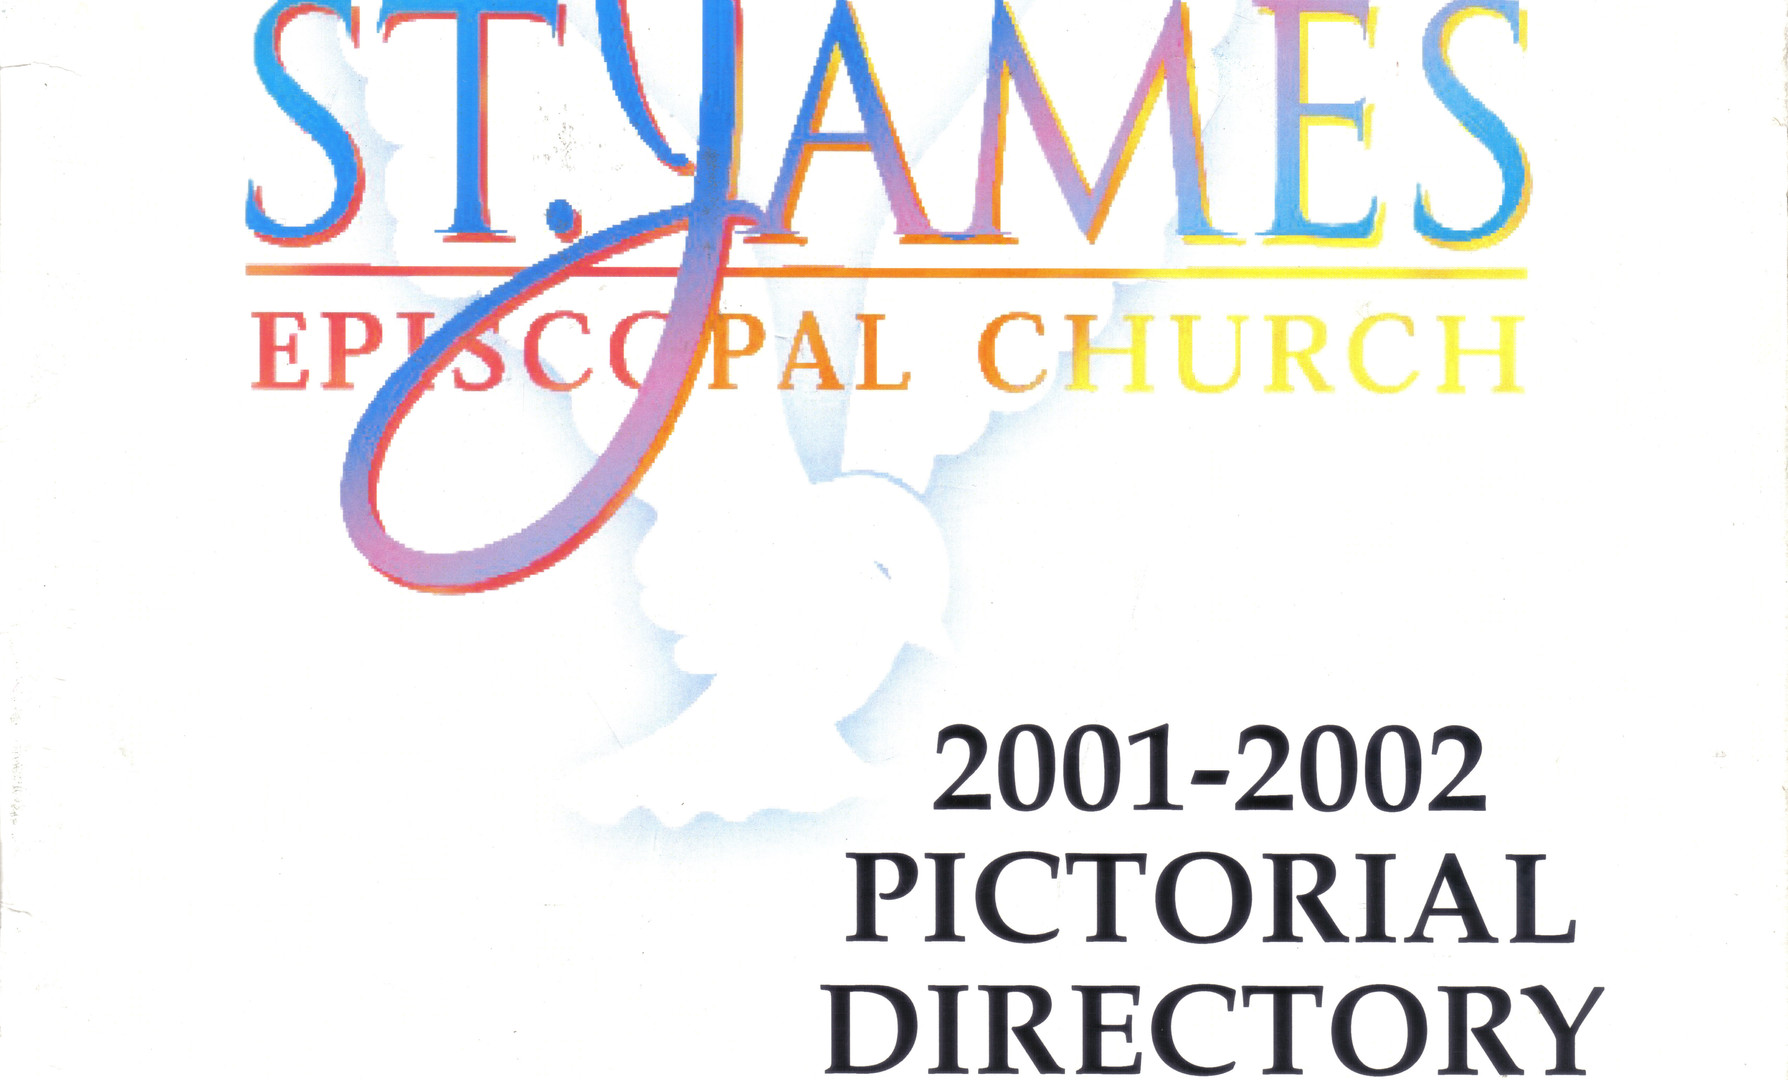 24 page member pictoral directory for St. James